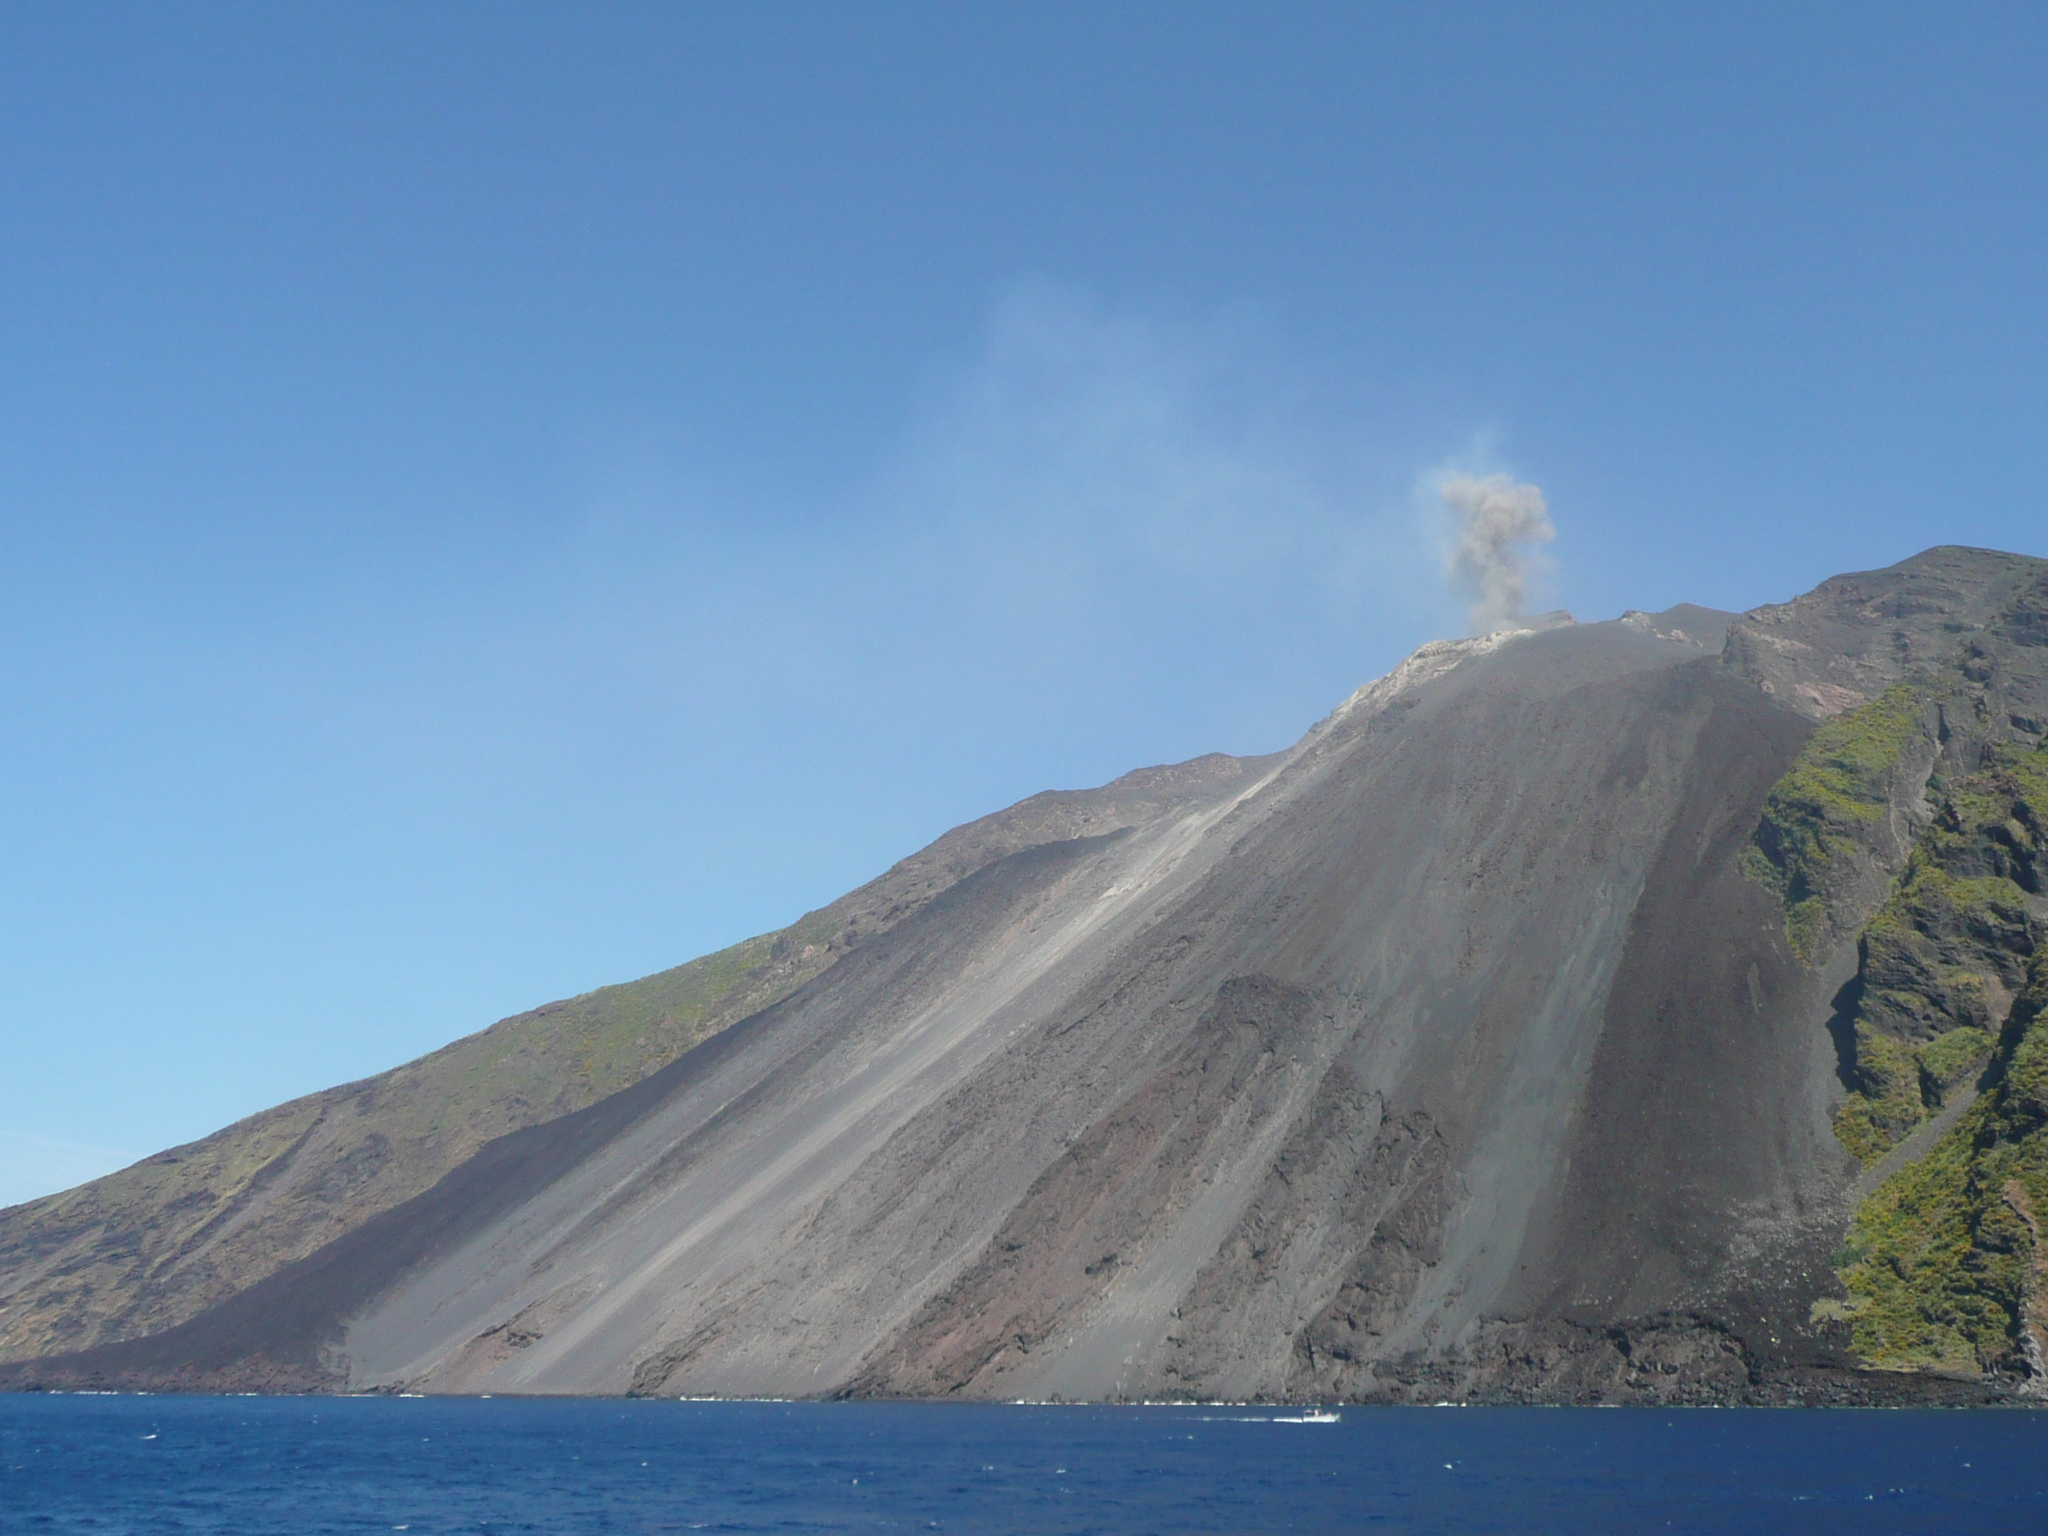 https://upload.wikimedia.org/wikipedia/commons/7/70/Stromboli_2009-06-05_D_Bruyere.JPG